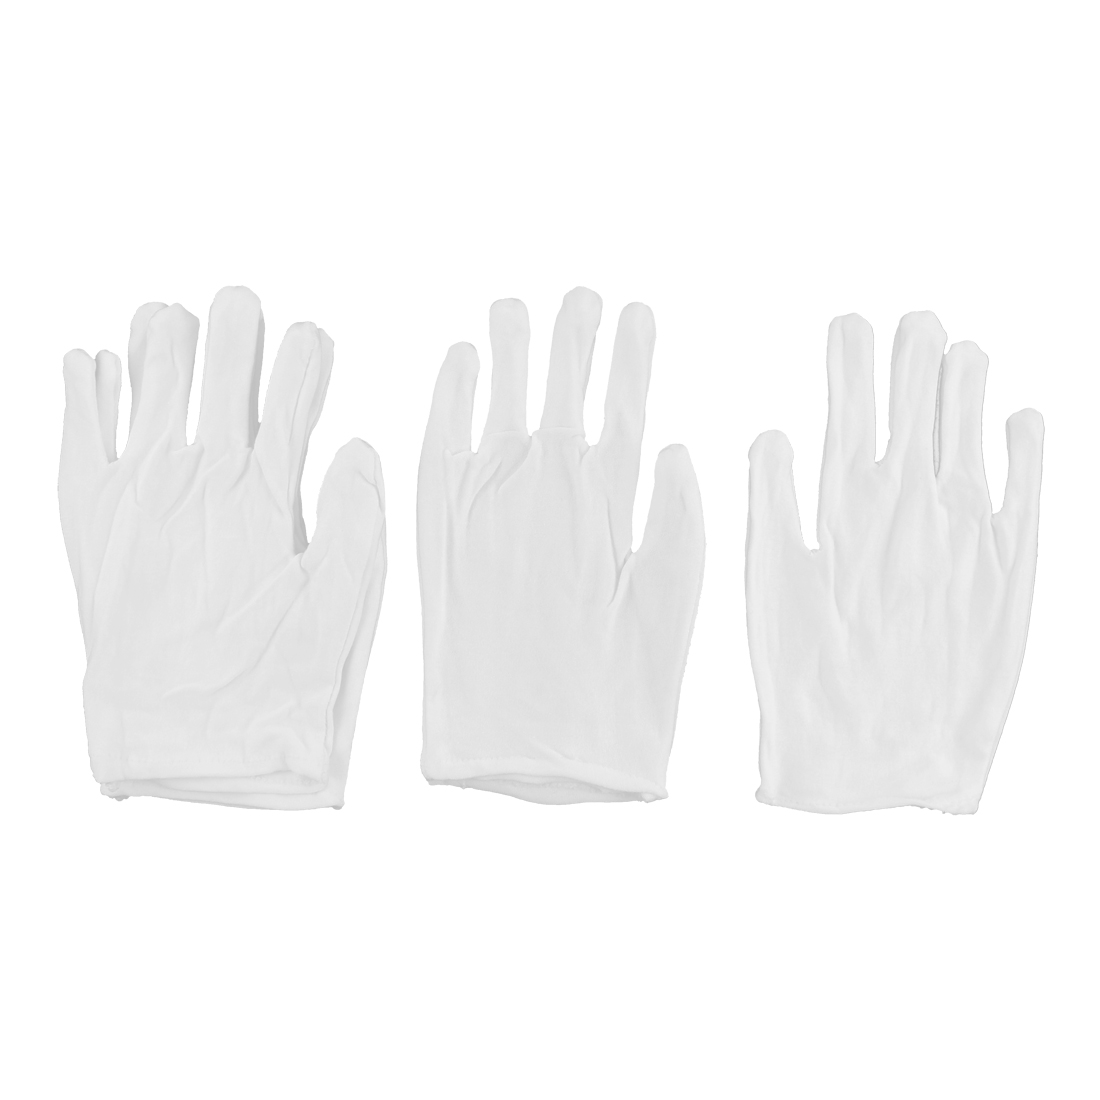 Women Cotton Blends Hand Protection Safety Work Working Gloves 2 Pairs